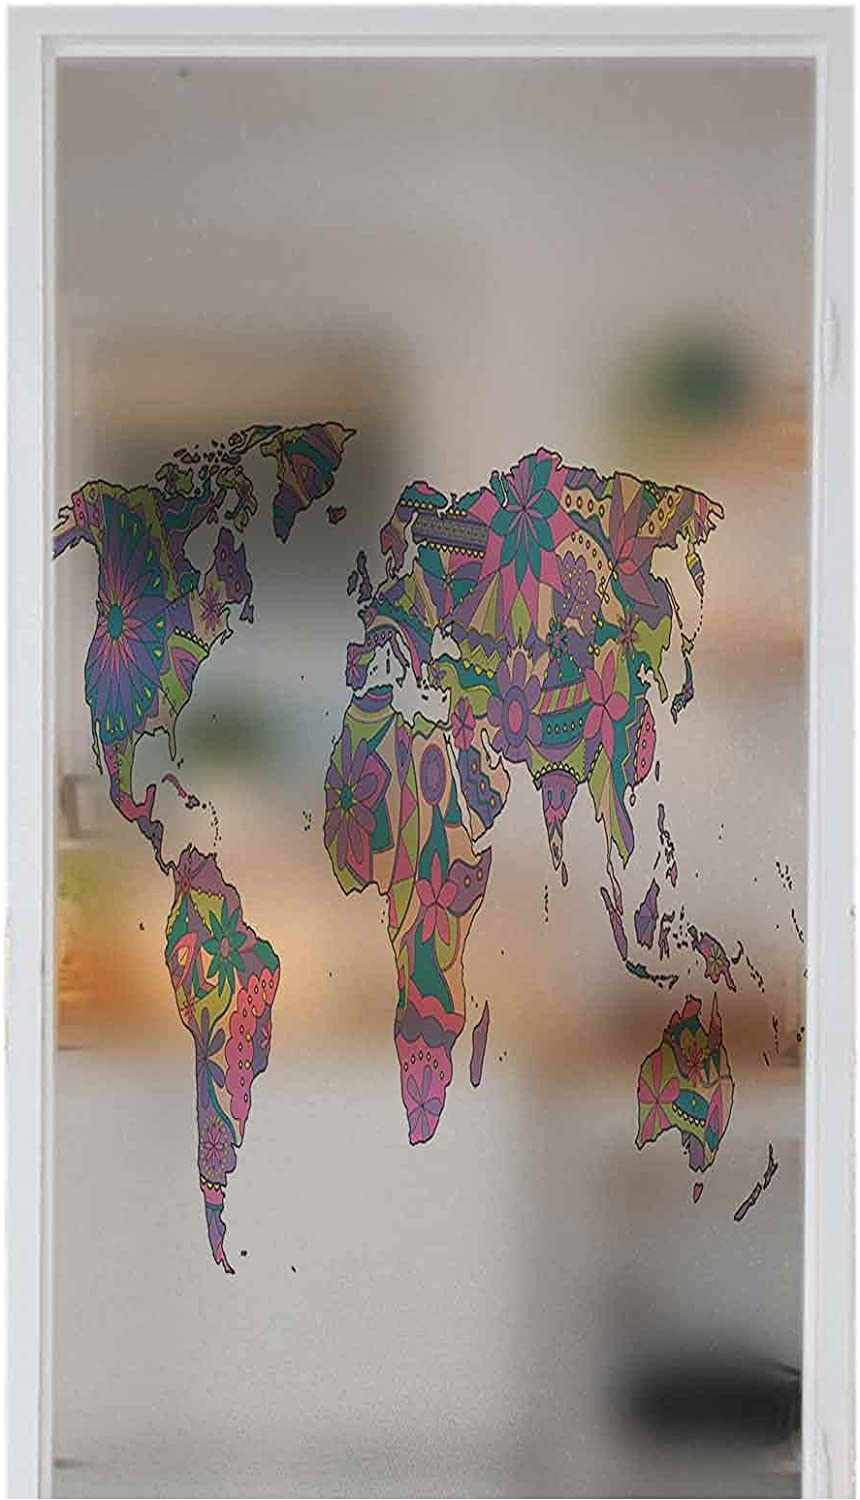 DIY Home High order Decoration Glass Stickers Colorf Window Albuquerque Mall Wanderlust Film